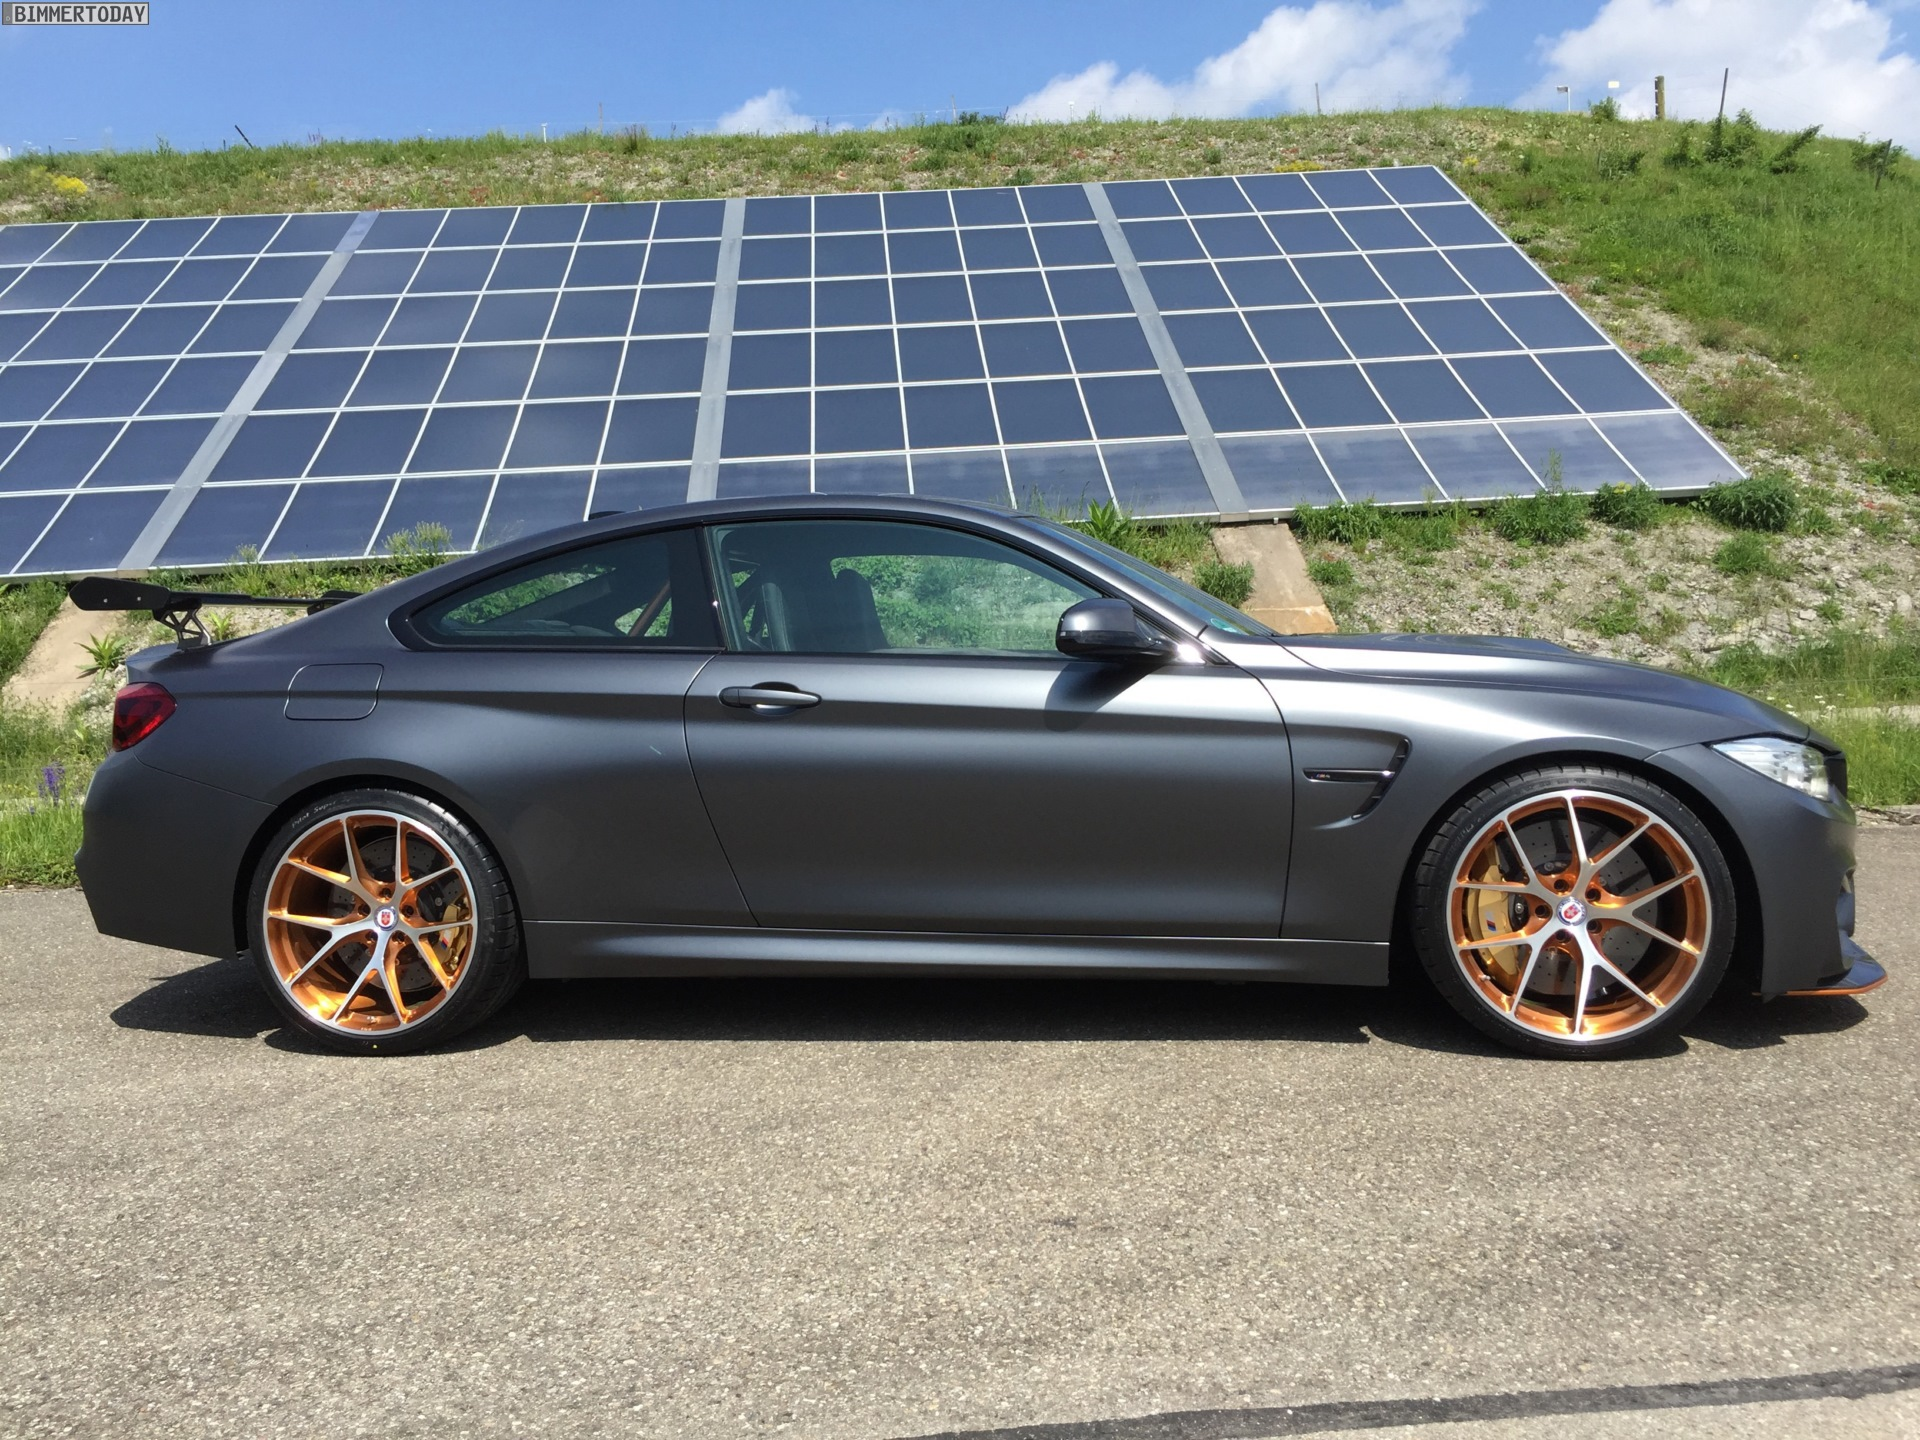 New Hre Custom Wheels For The Bmw M4 Gts